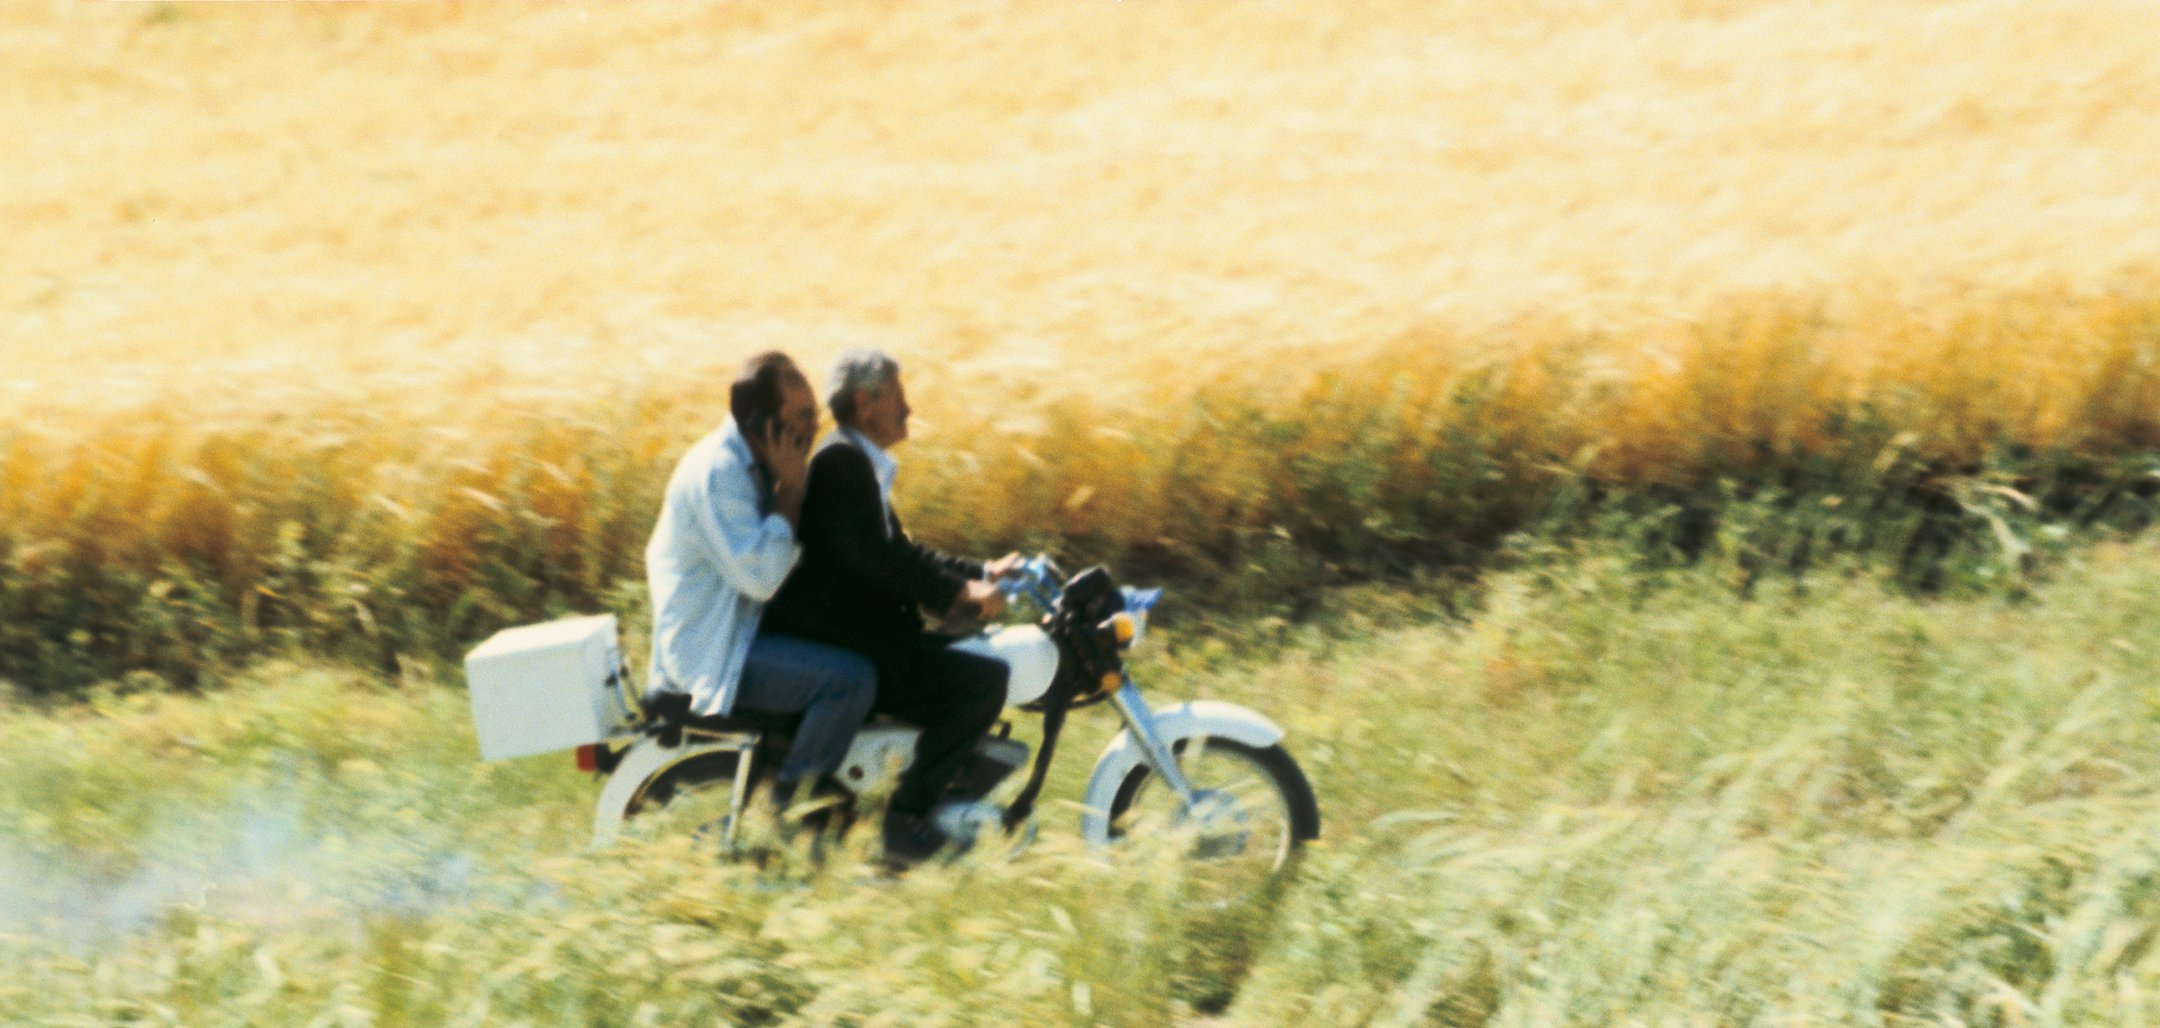 Still of Behzad Dorani and the doctor on a motorbike in a still from 'The Wind Will Carry Us' (1999, Copyright MK2)